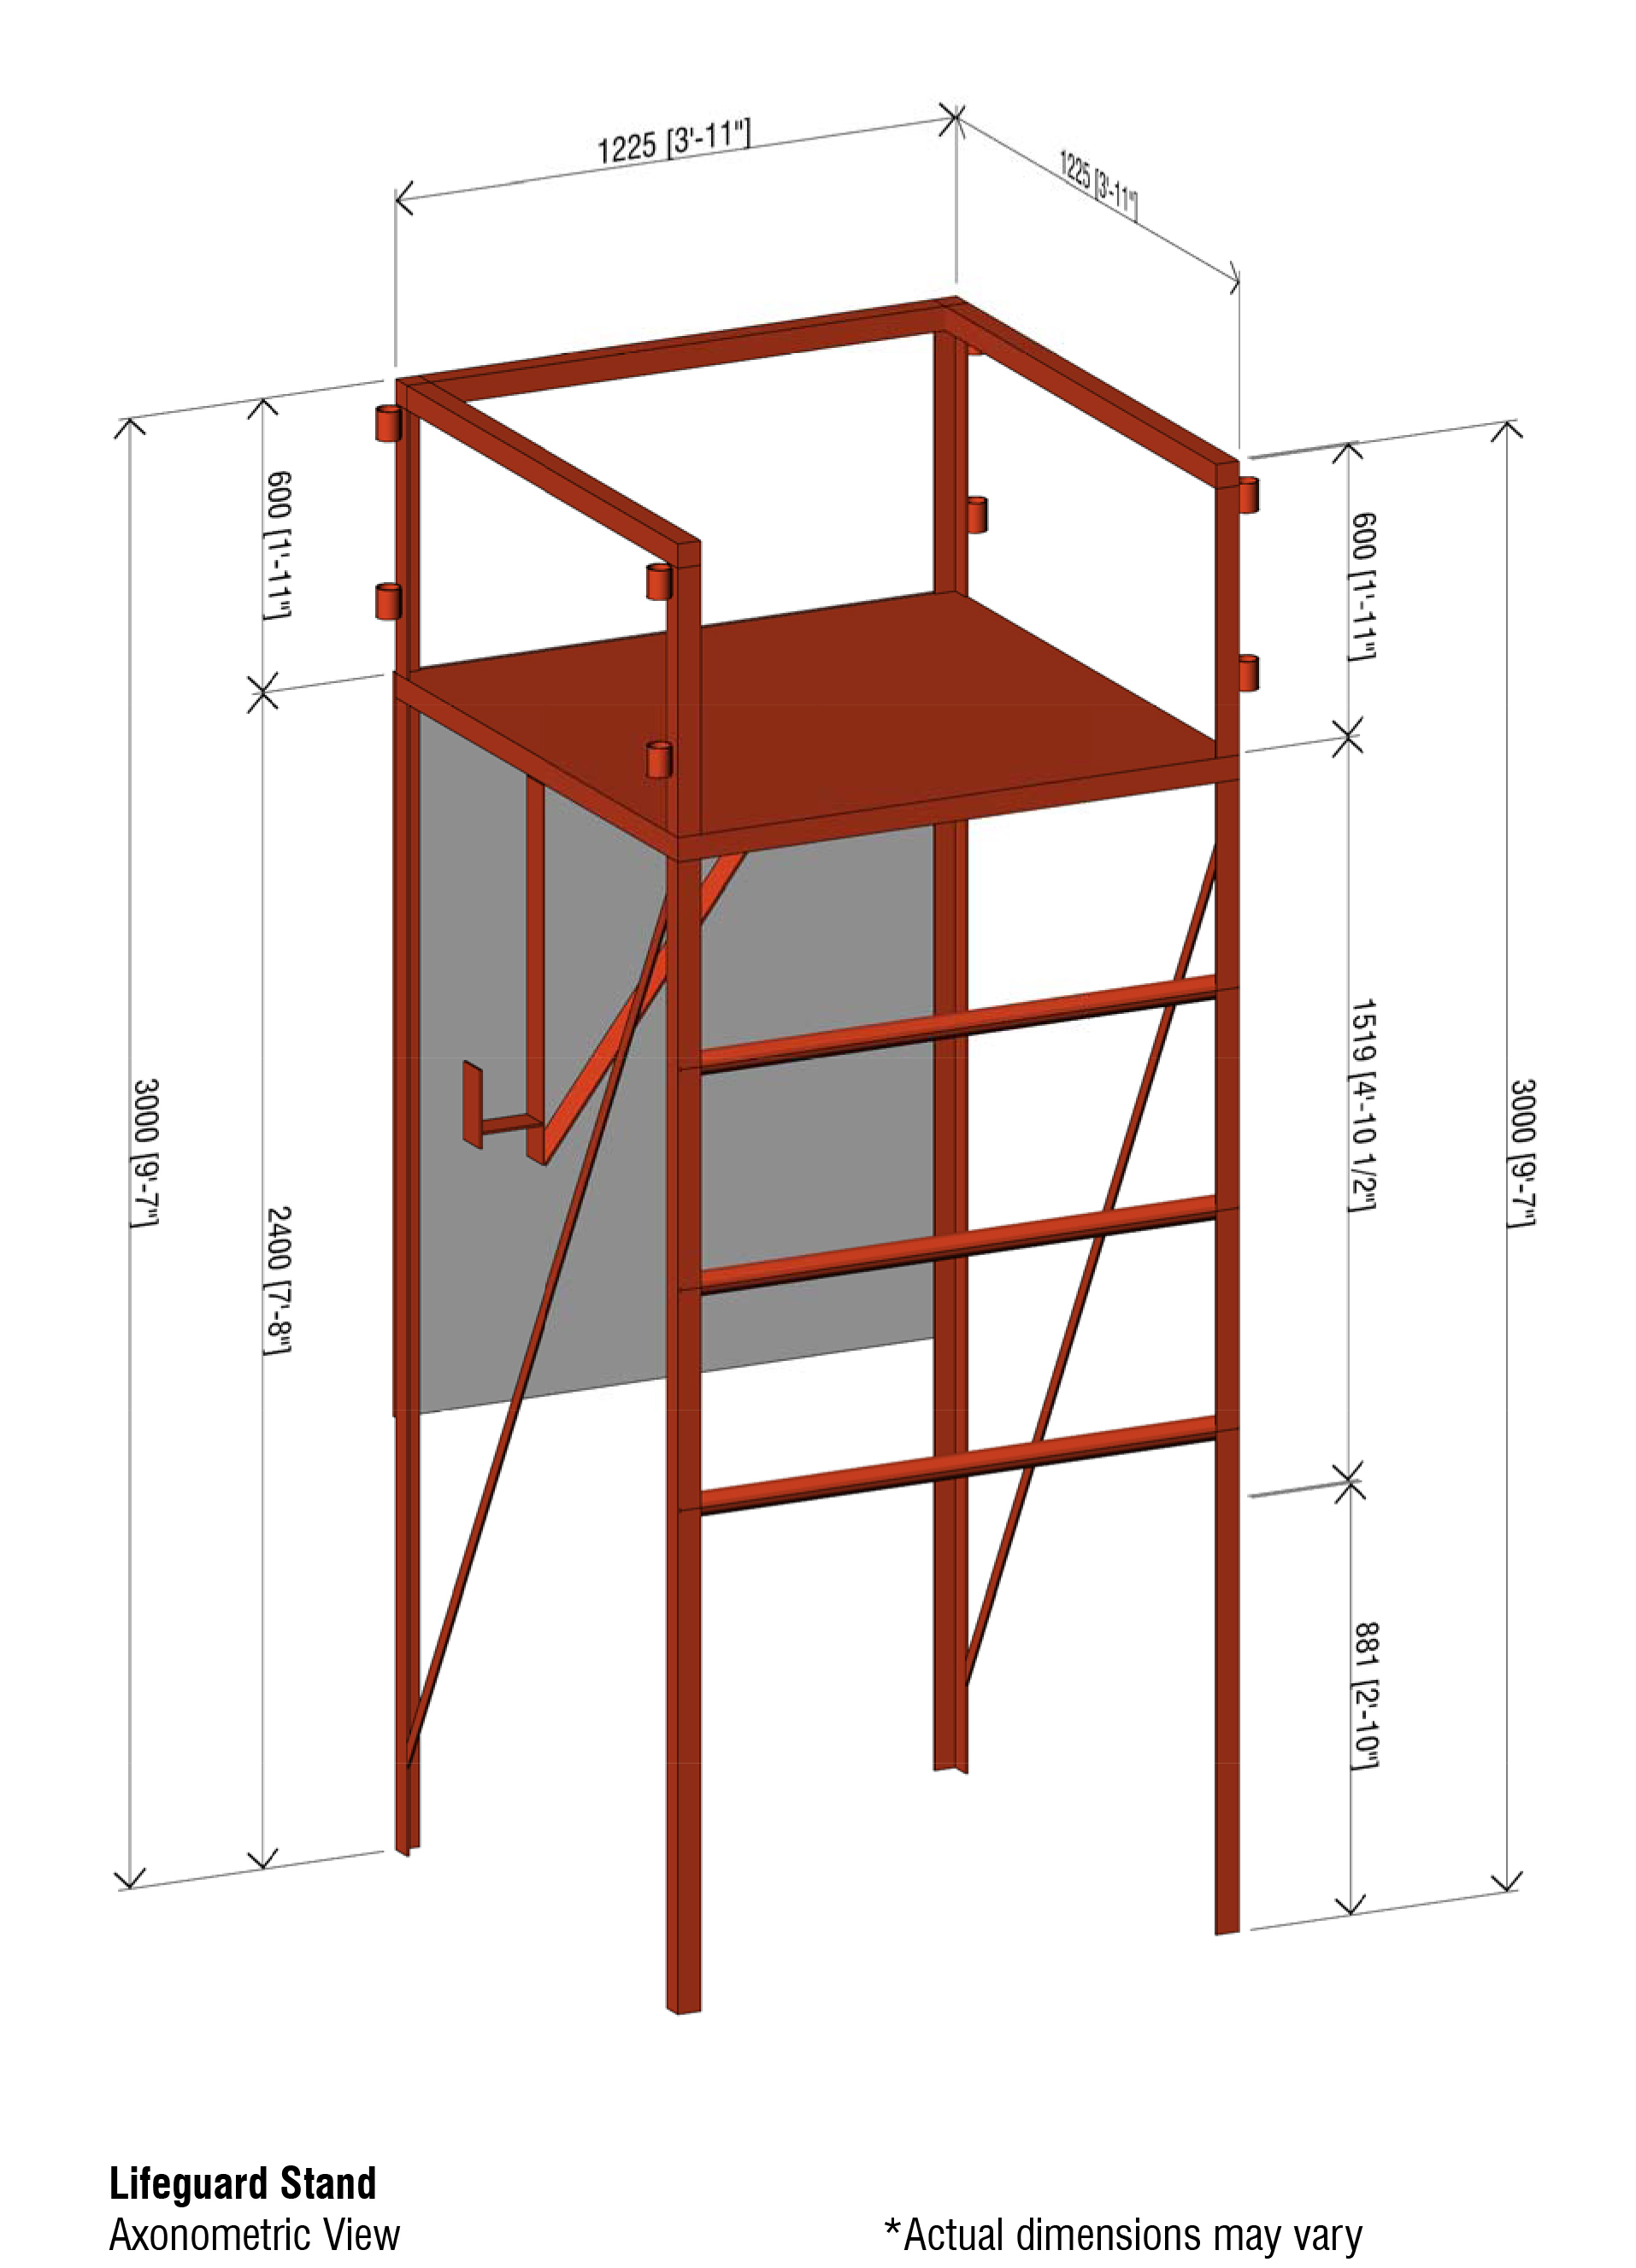 LIFEGUARD STAND_dimensions and axons-1.jpg